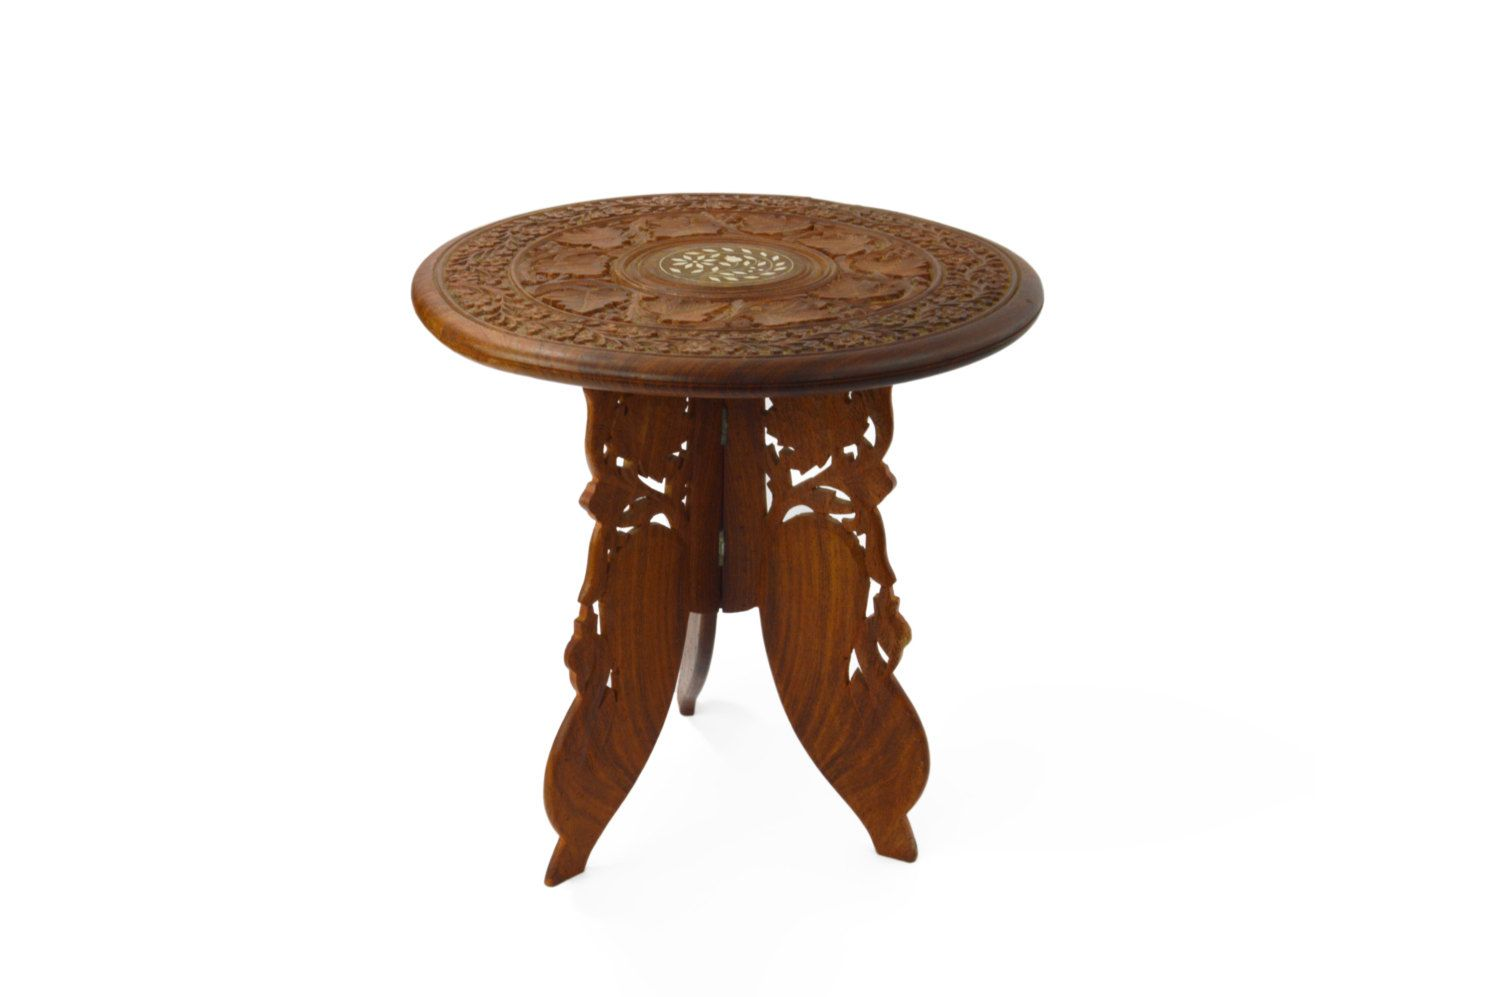 Vintage Table 1960 S Carved And Inlaid Three Leg Indian Etsy Vintage Table Indian Table Bohemian Decor [ 997 x 1500 Pixel ]